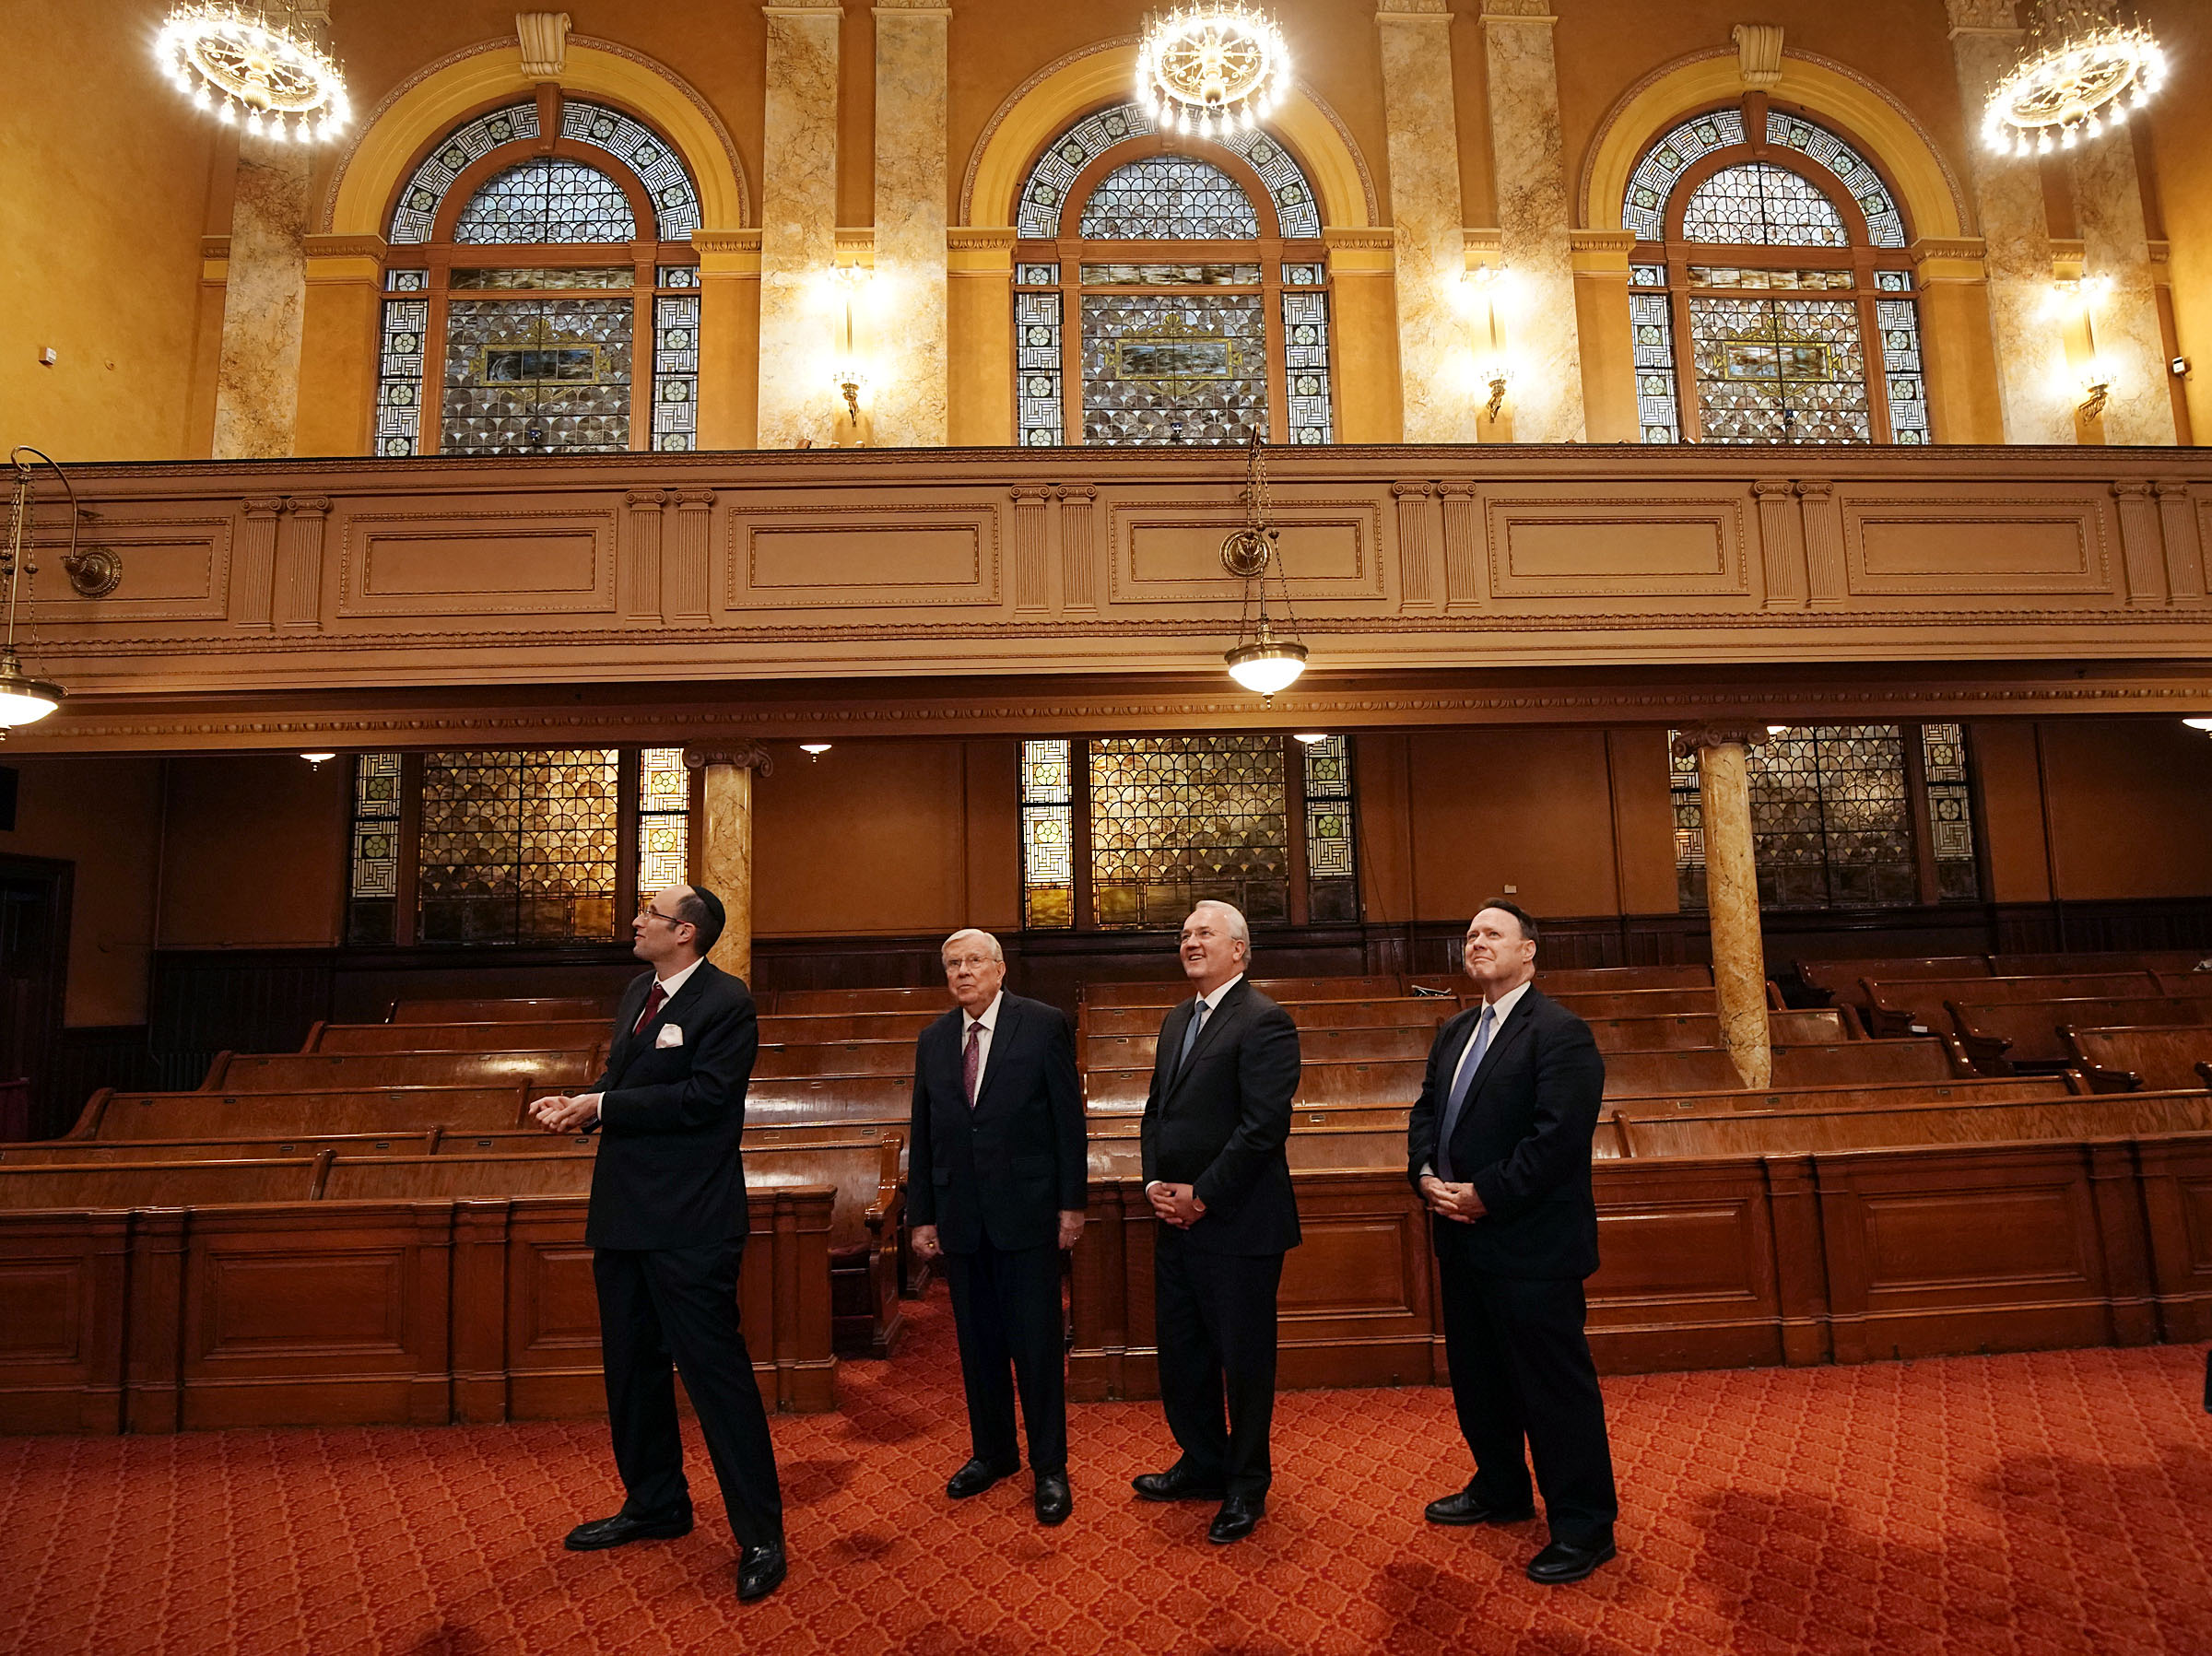 Rabbi Meir Y. Soloveichik, left, talks with President M. Russell Ballard, acting president of the Quorum of the Twelve Apostles, Elder Jack N. Gerard and Elder David L. Buckner of The Church of Jesus Christ of Latter-day Saints during a tour of the Spanish and Portuguese Synagogue of the Congregation Shearith Israel in New York City on Friday, Nov. 15, 2019.